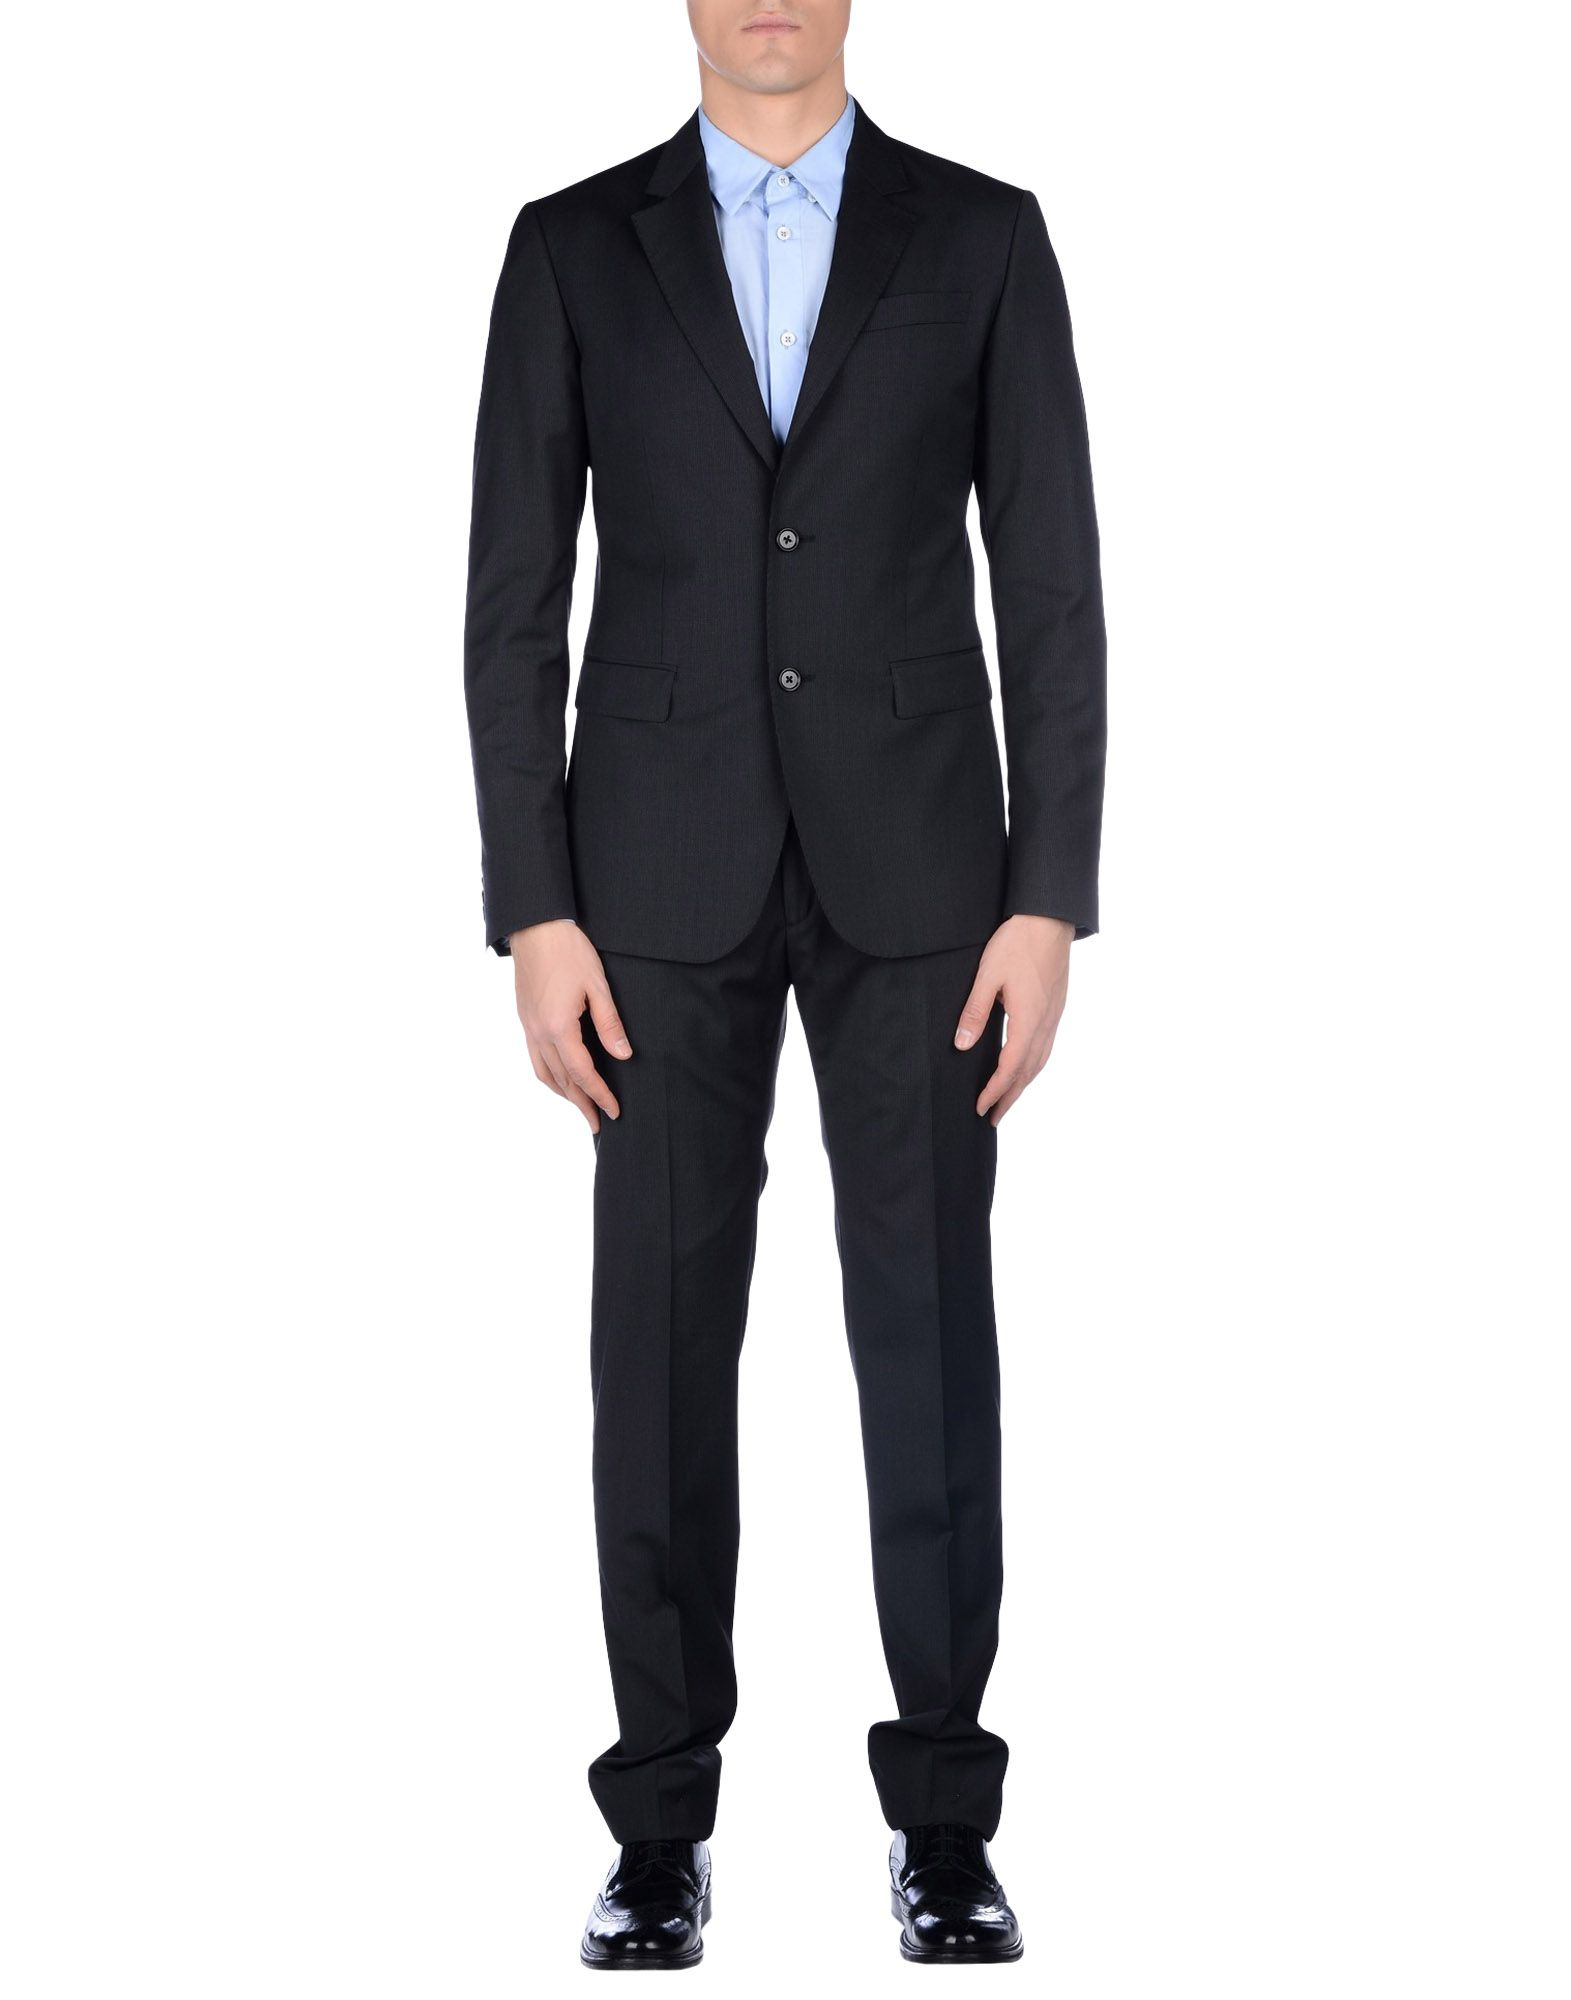 onia black single men Find new and preloved onia items at up to 70% off retail prices poshmark makes shopping fun, affordable & easy.